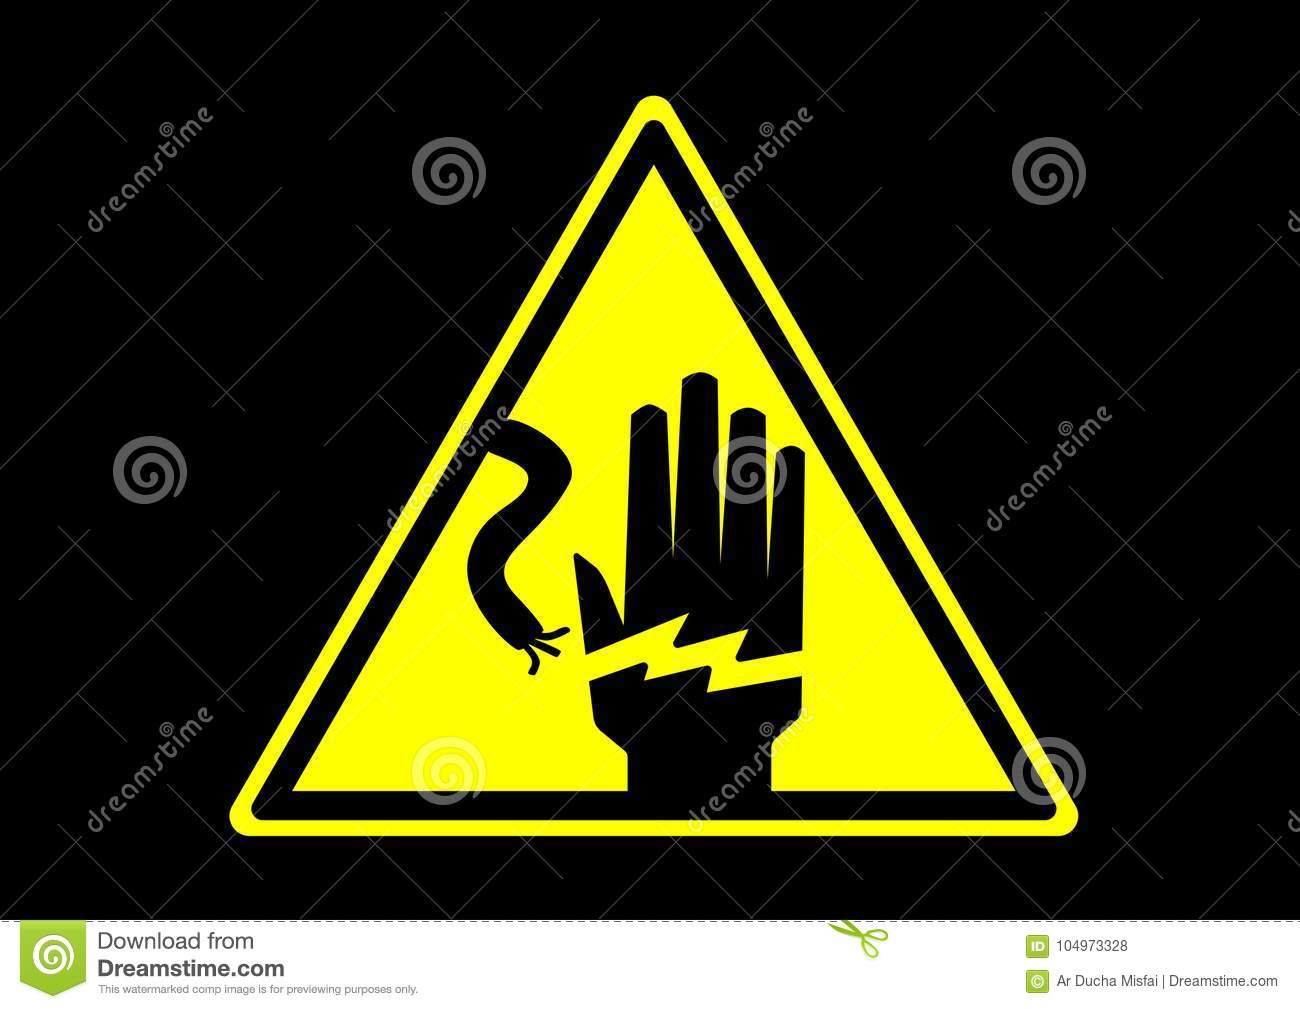 Cute electrical shock symbol gallery electrical and wiring electrical shock symbol gallery symbol and sign ideas biocorpaavc Choice Image